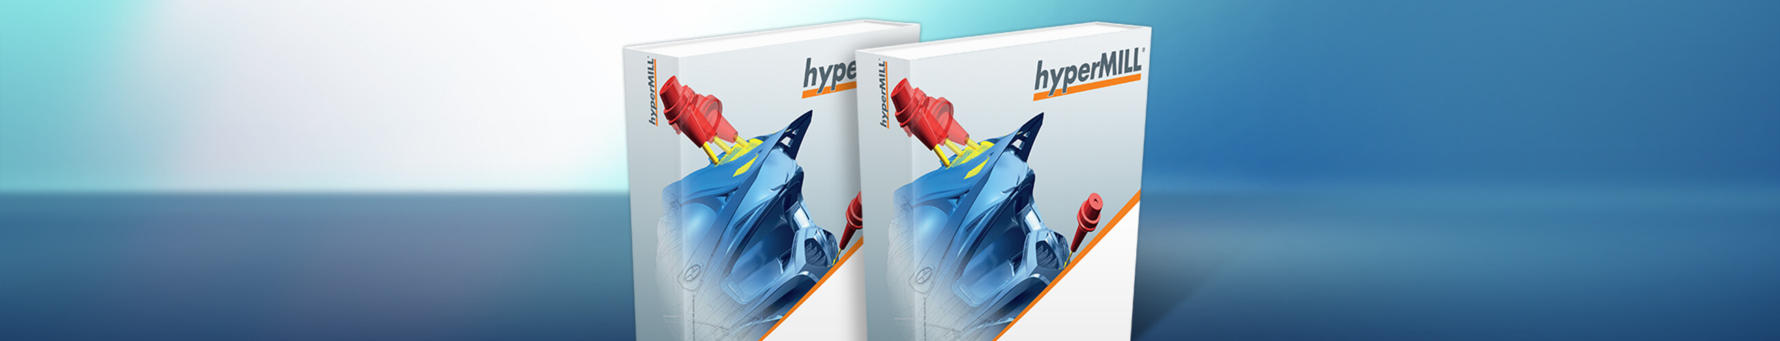 hyperMILL software - CAM Software for NC Programming